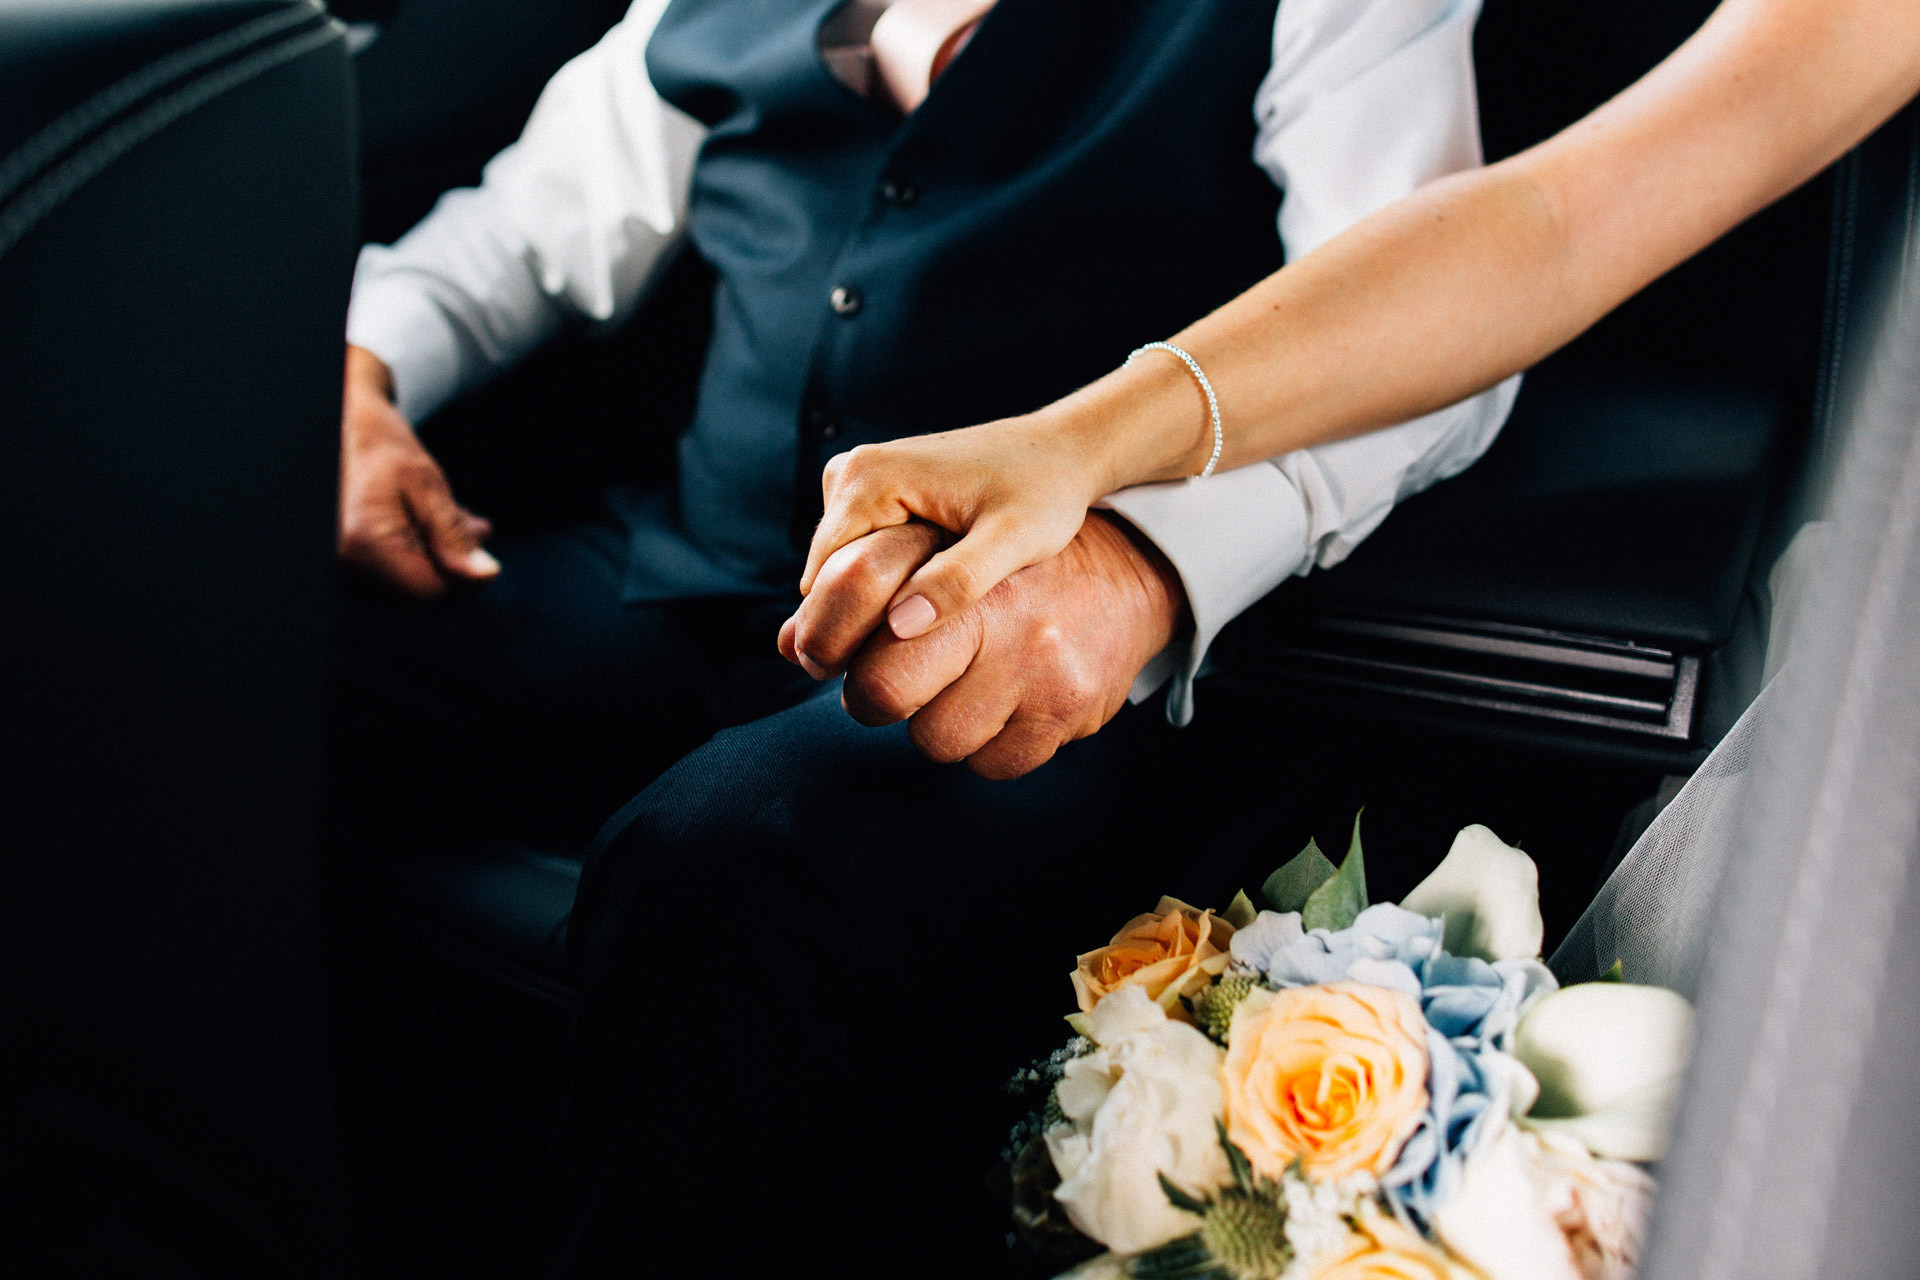 Best wedding photography 2016 - holding hands with dad in the car